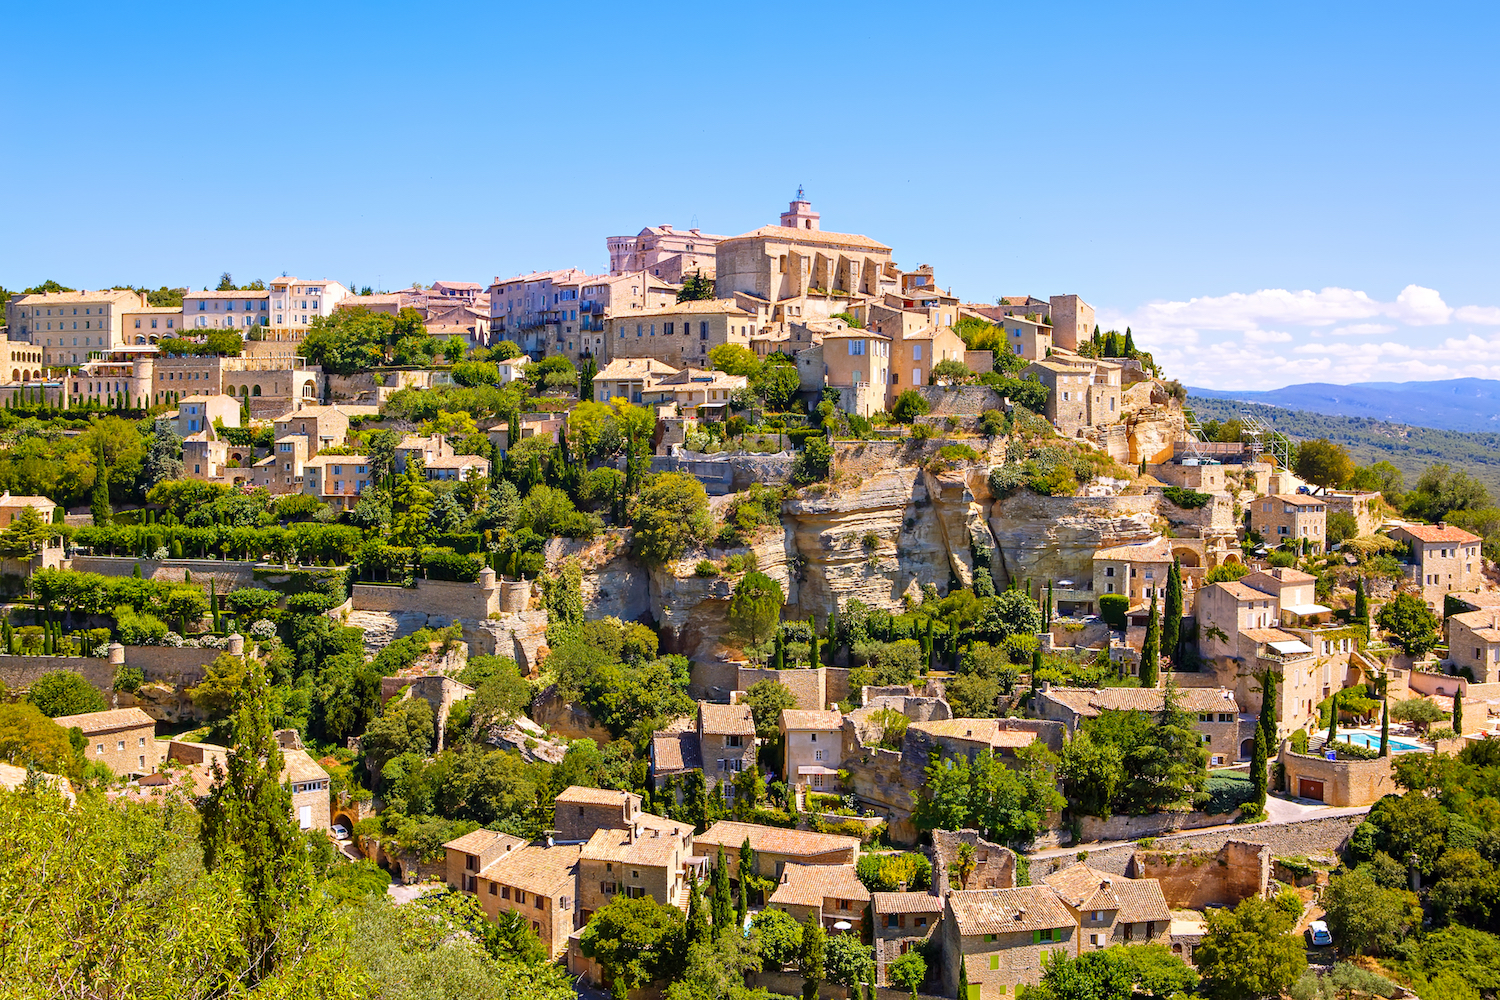 The village of Gordes perched on a hill top in Provence